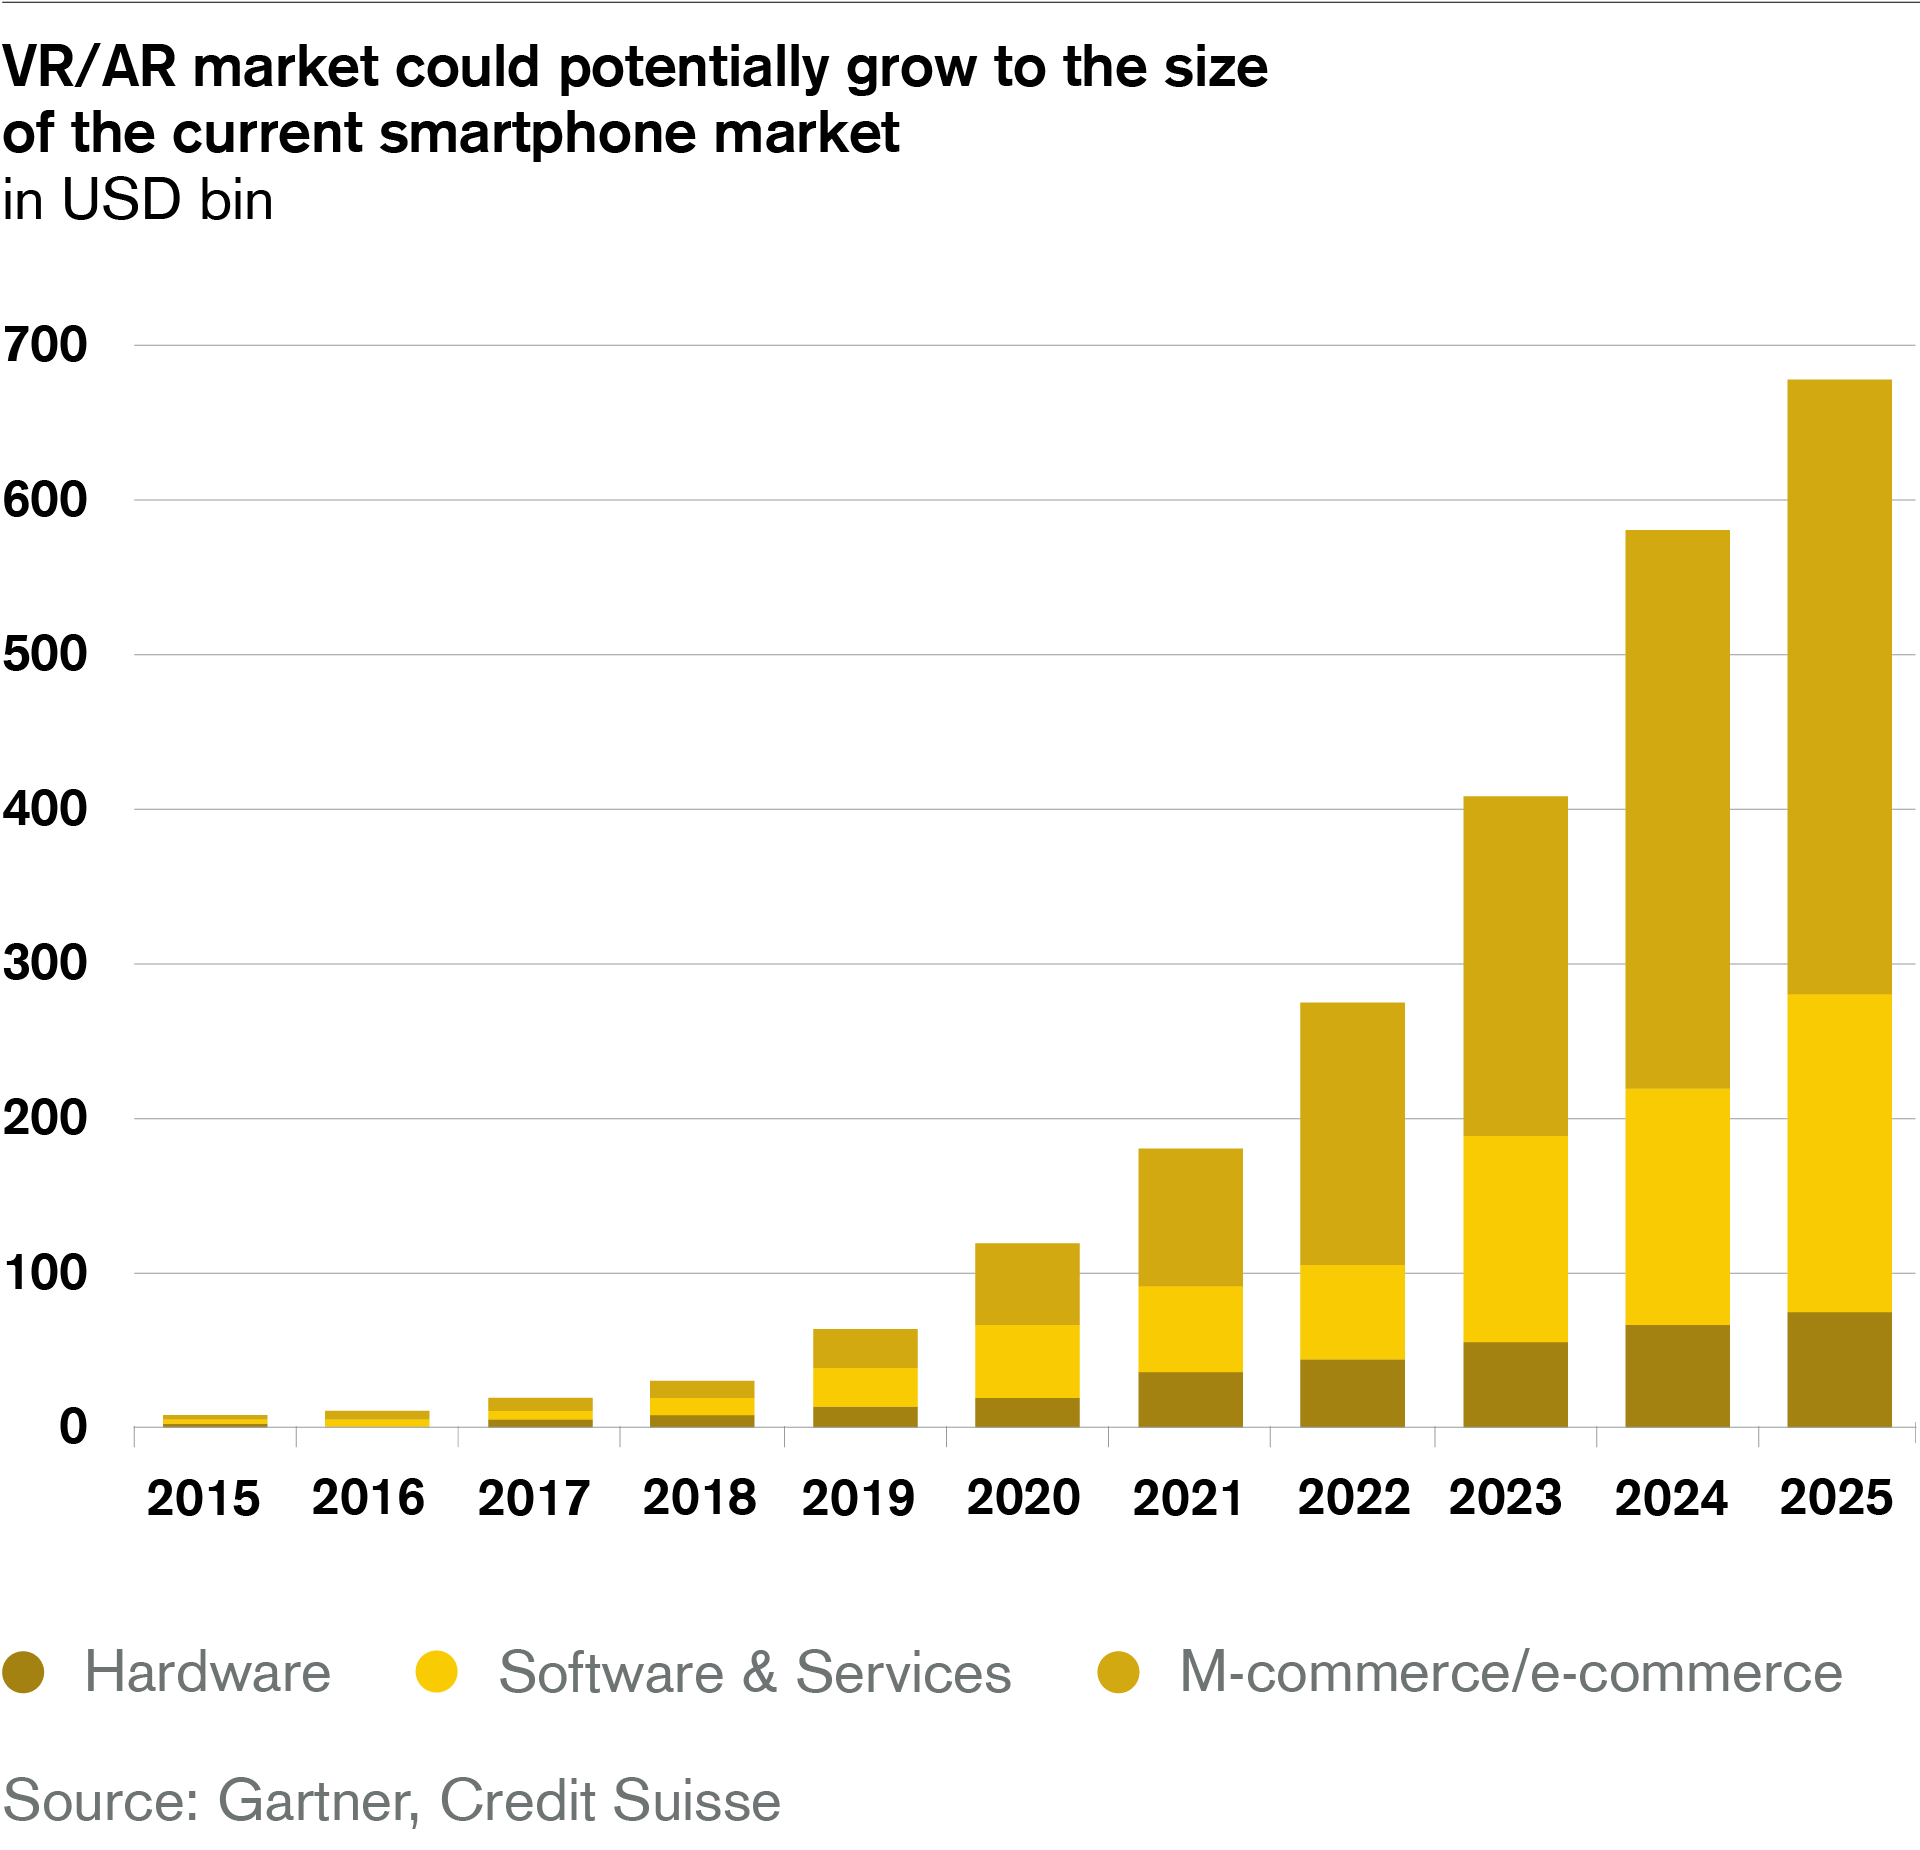 VR/AR market could potentially grow to the size of the current smartphone market